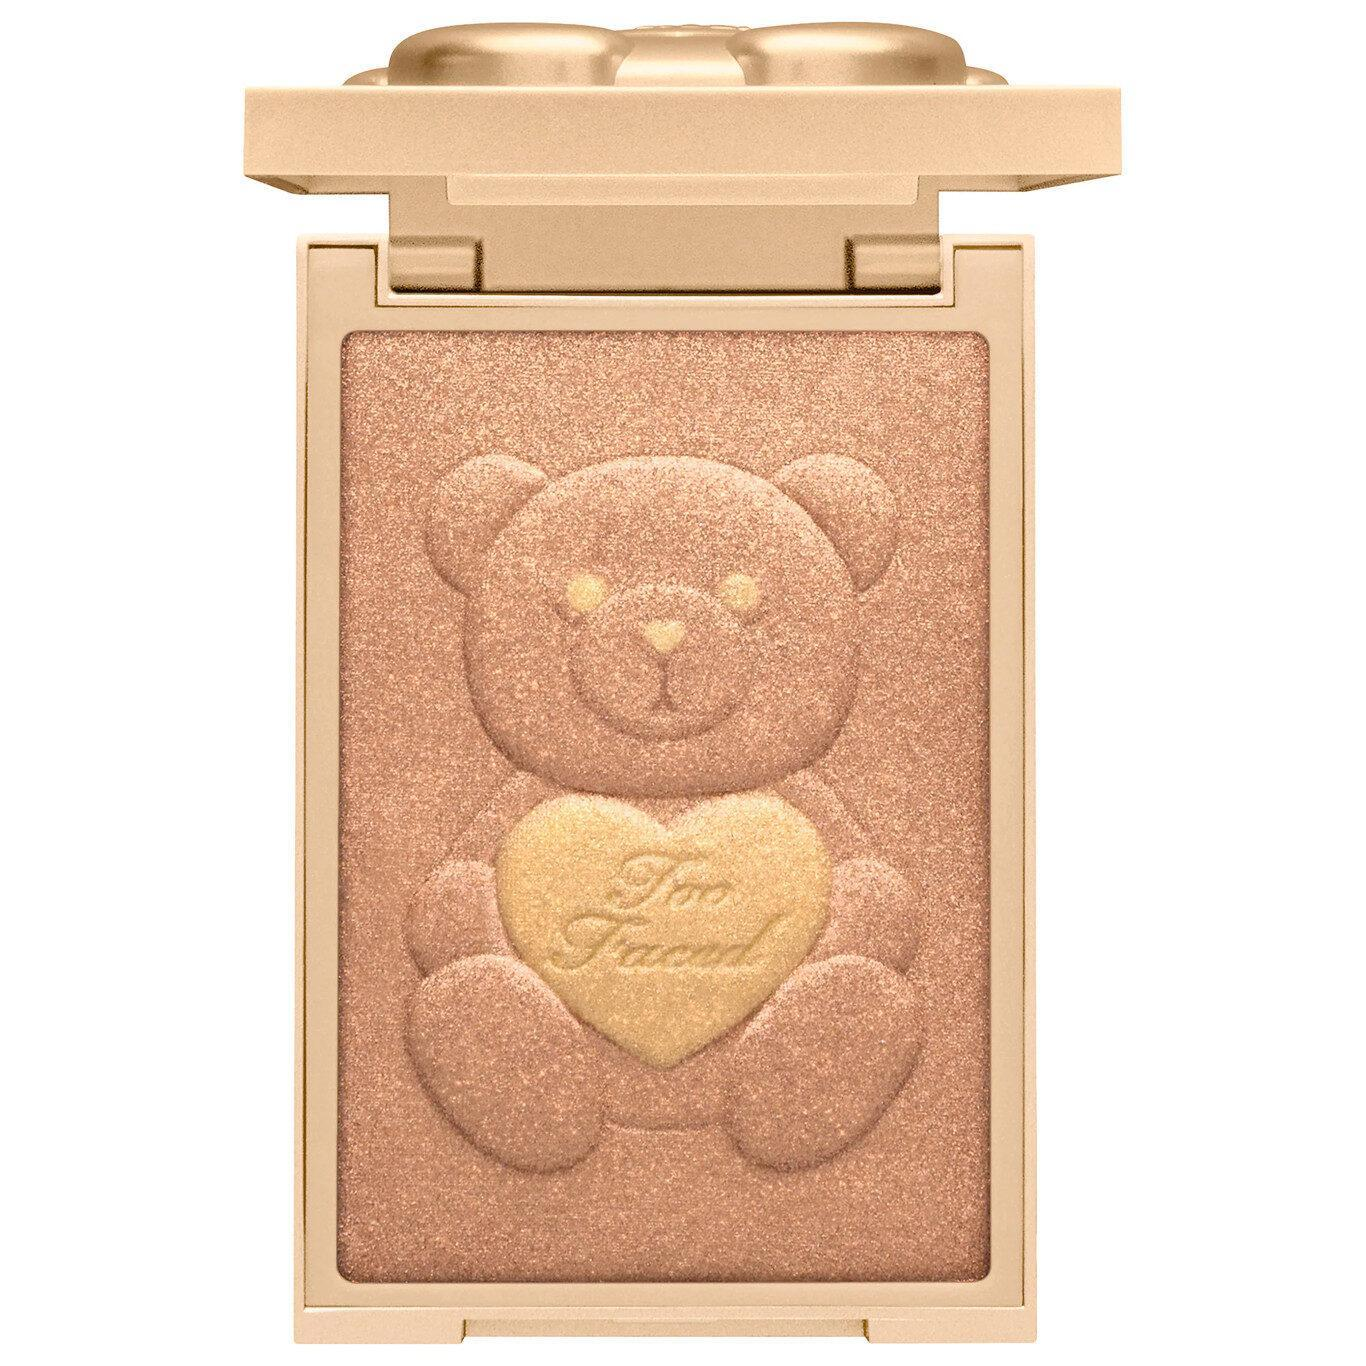 Too Faced Teddy Bare Collection Teddy Bare It All Bronzer Open